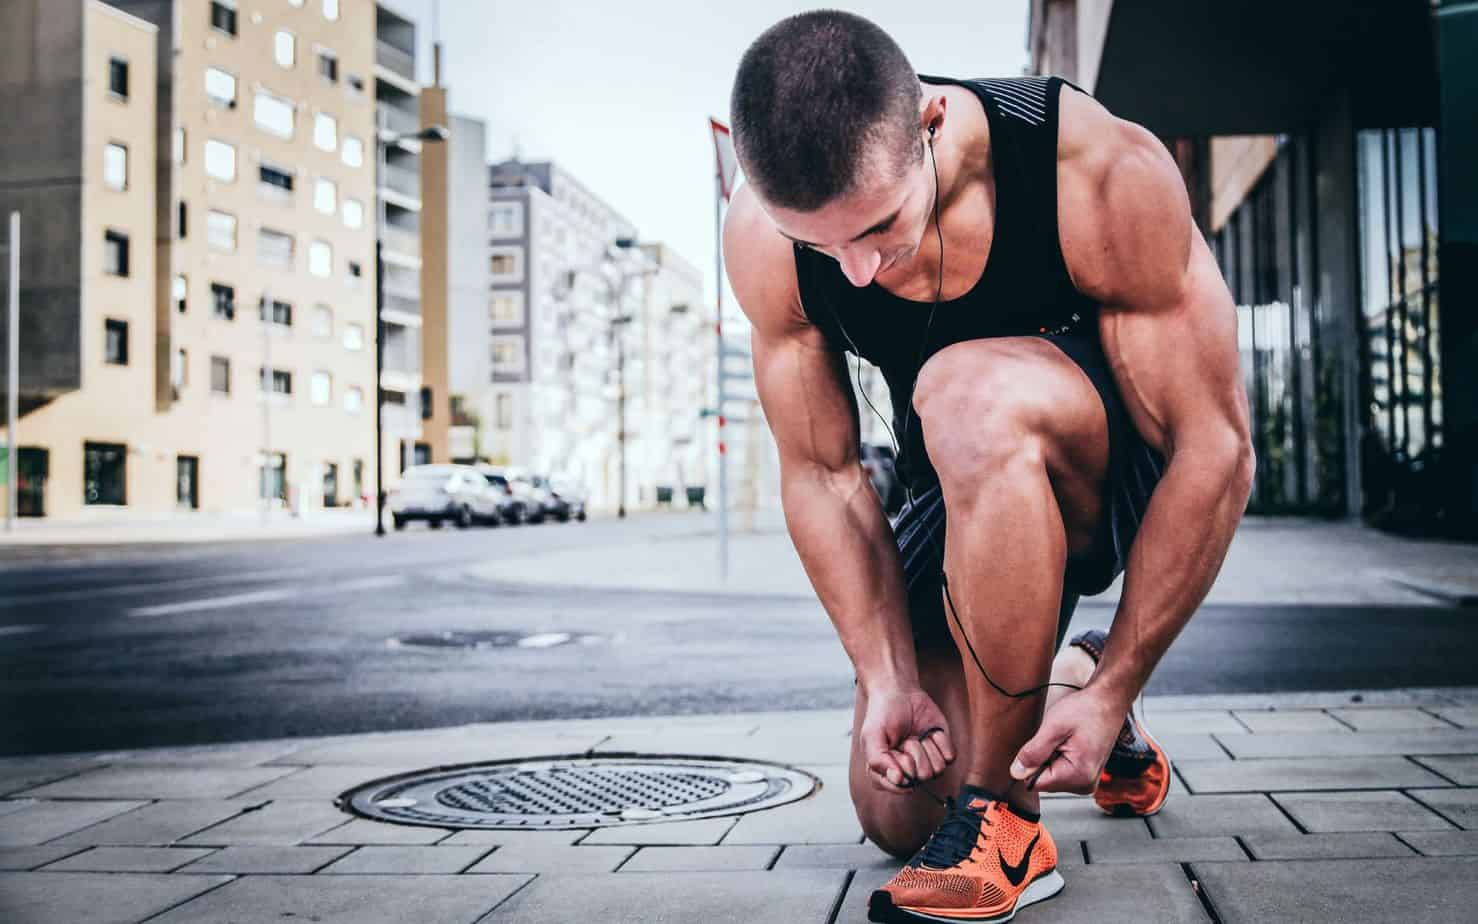 Stay Fit without Wasting Money at Gym